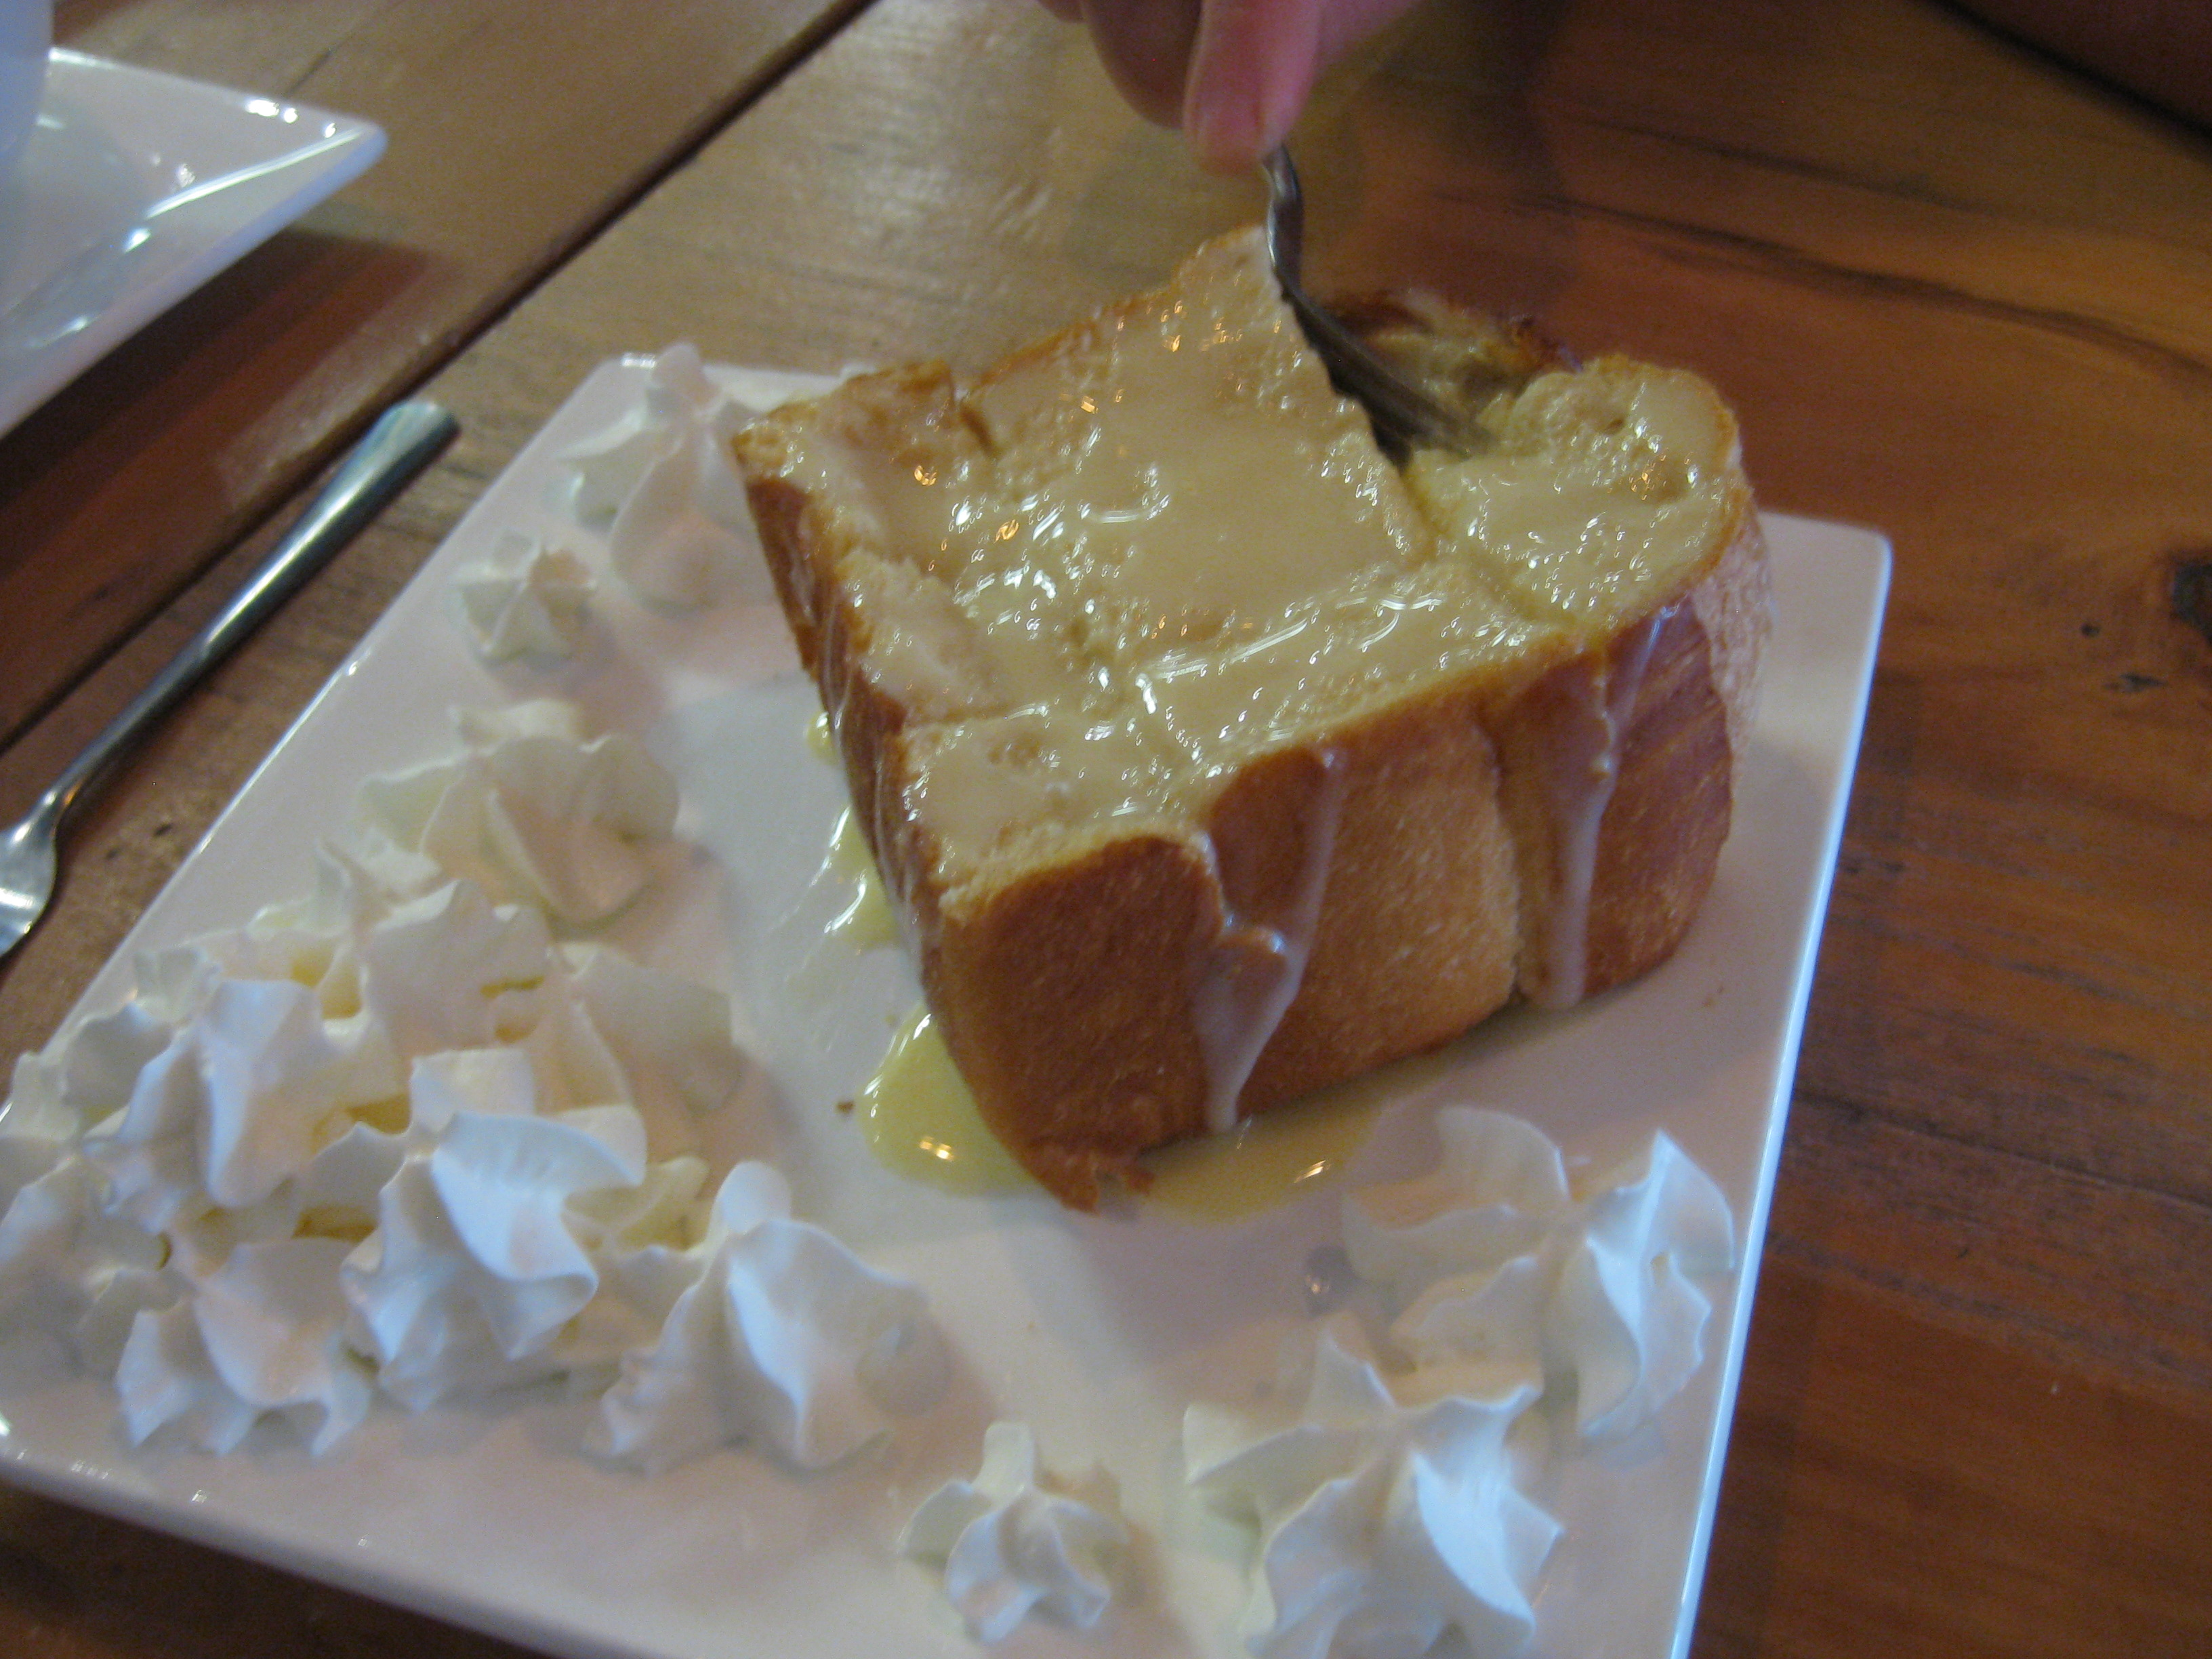 Taiwanese toast with condensed milk